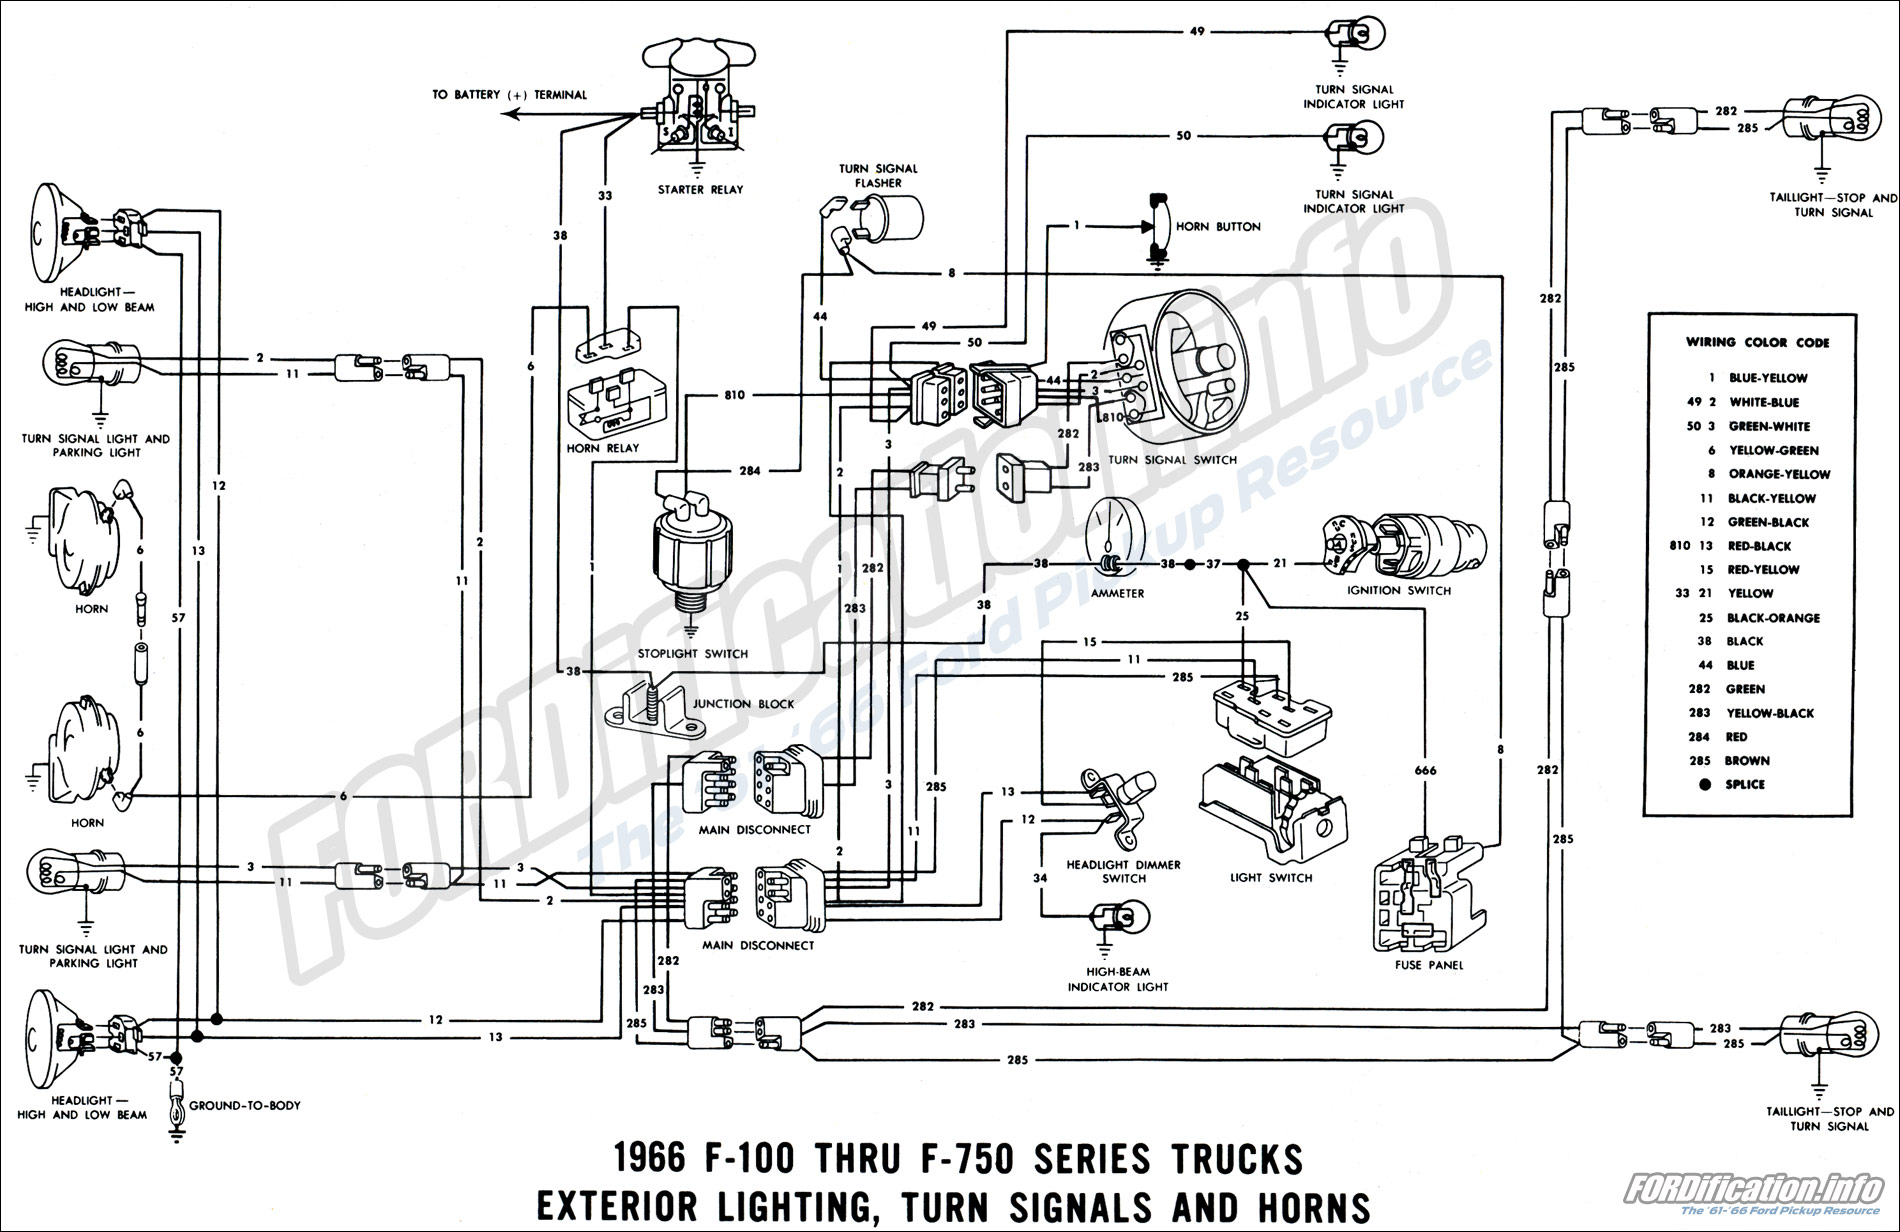 1968 mustang wiring diagram convert ble - 2000 ford f 250 fuel wiring  diagram for wiring diagram schematics  wiring diagram and schematics